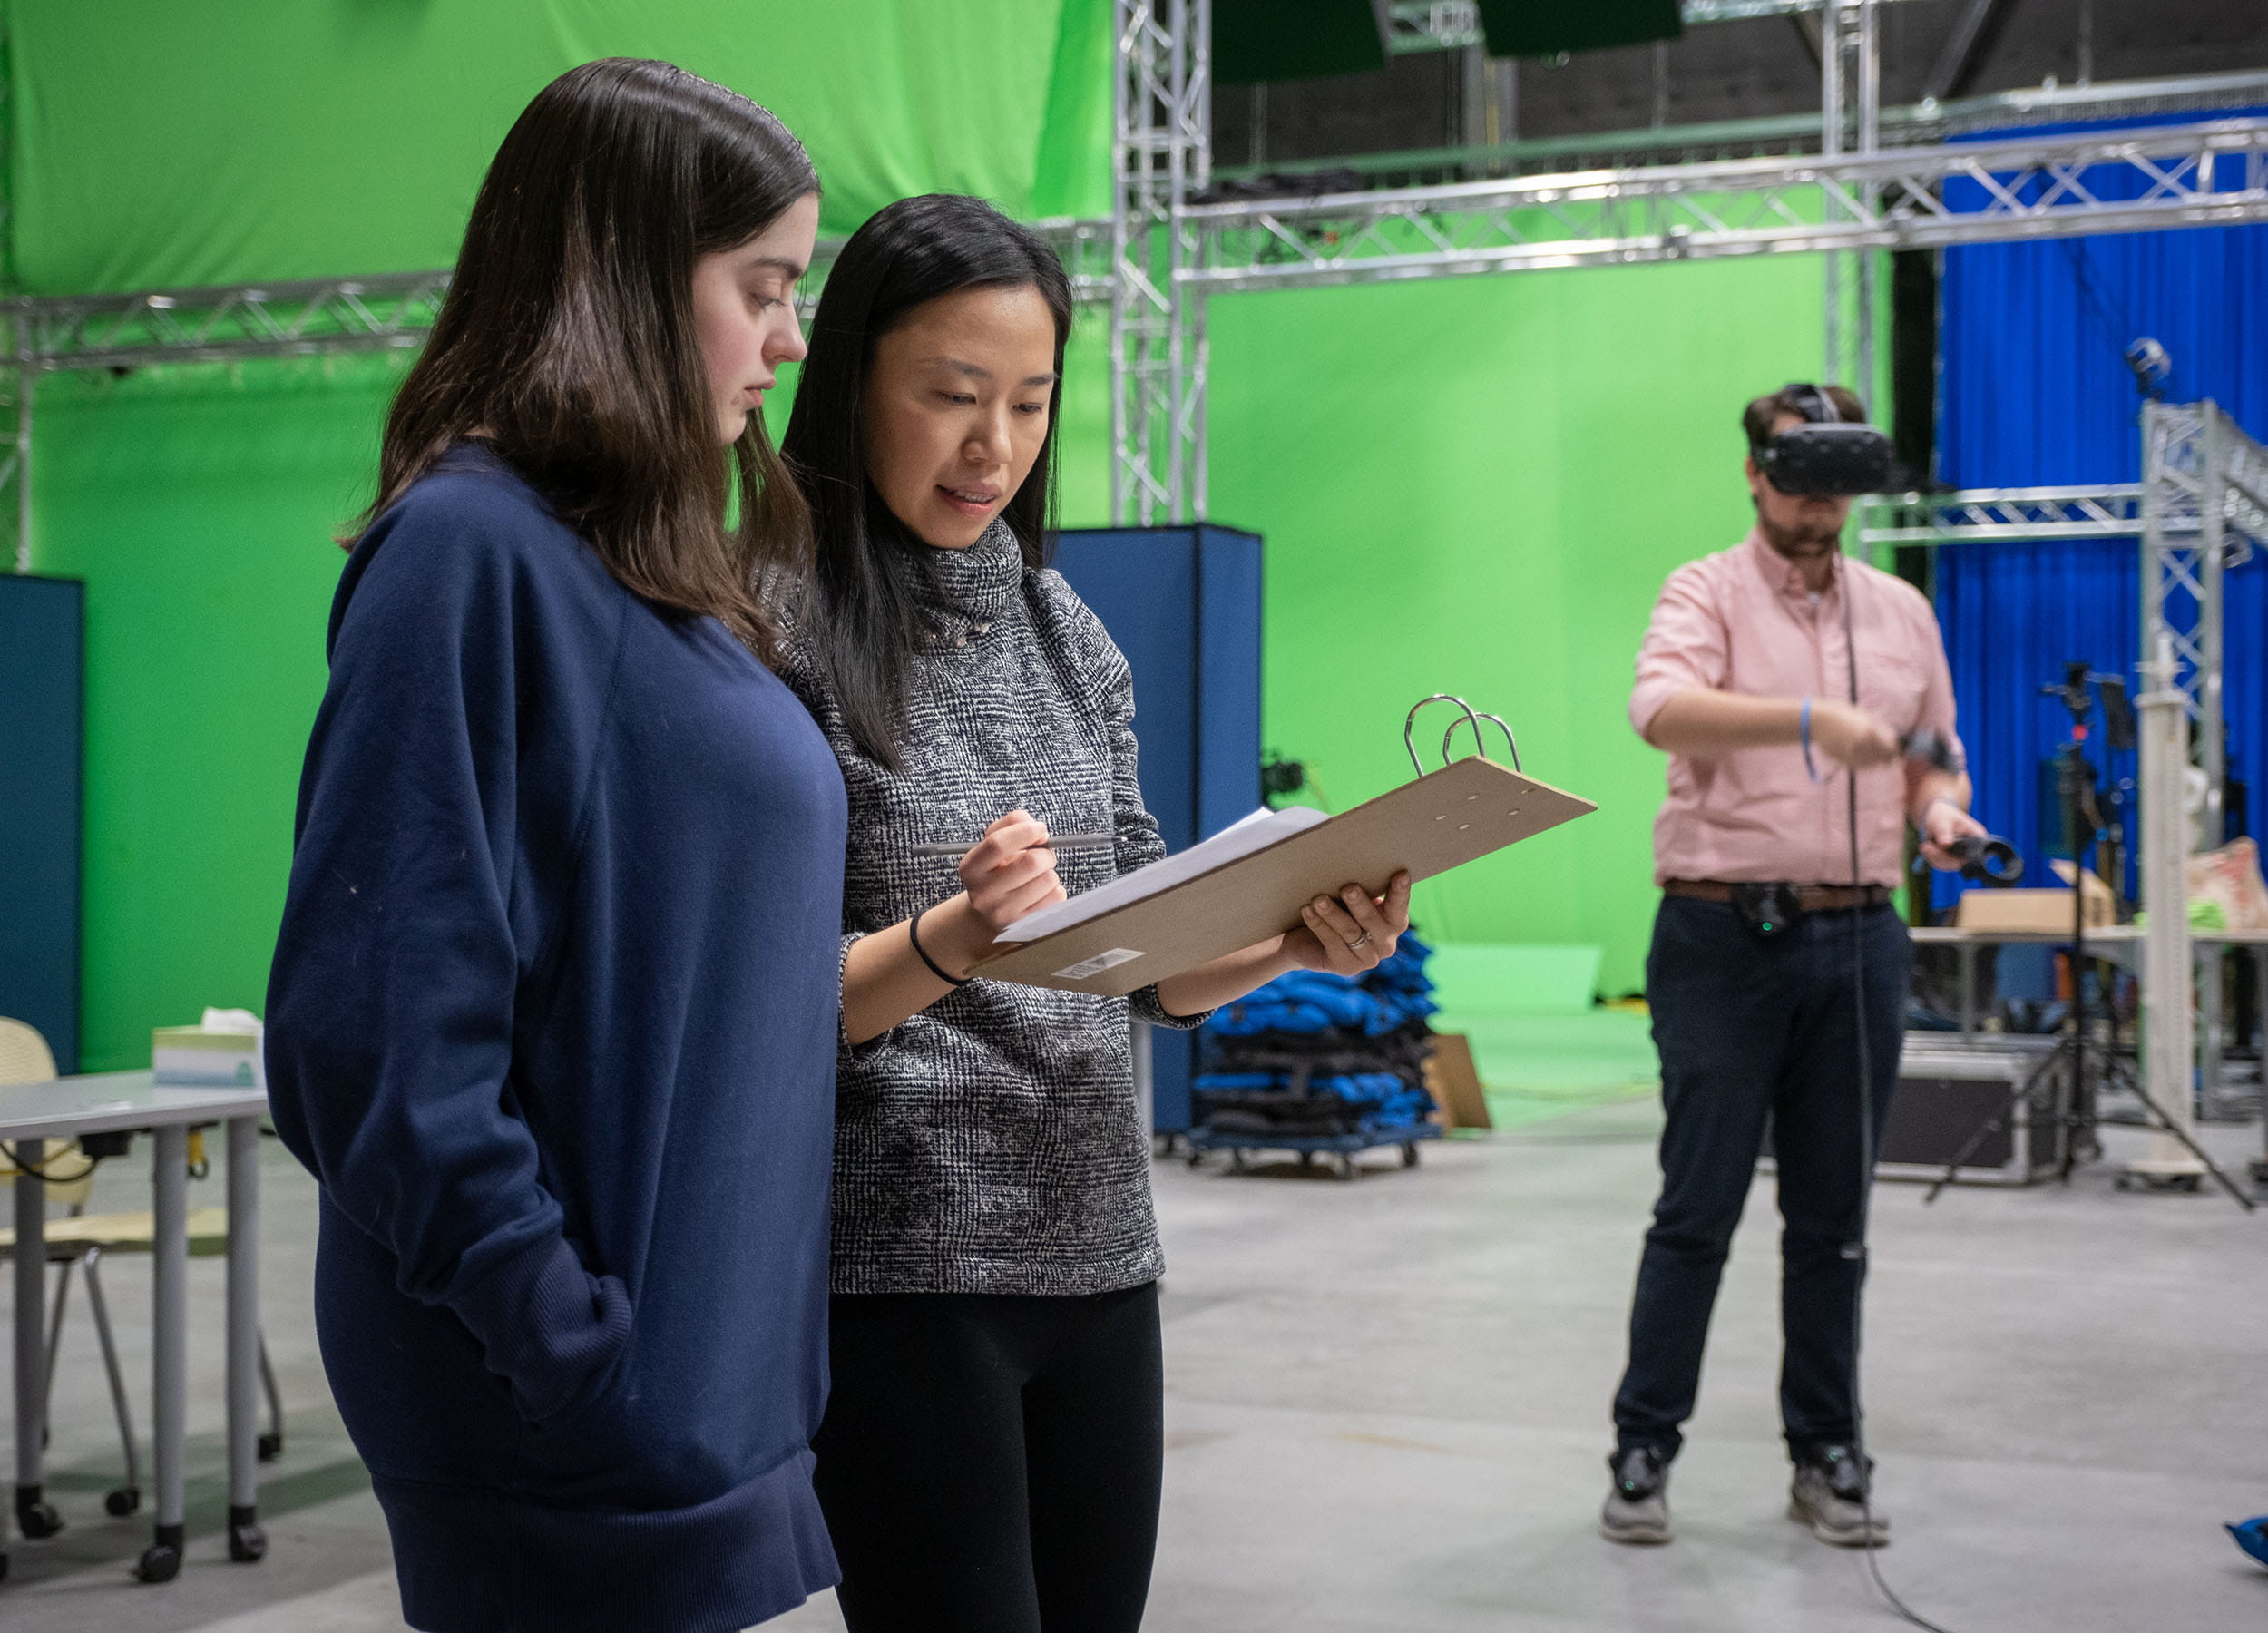 Two female students looking at a clipboard while a male student uses a VR headset